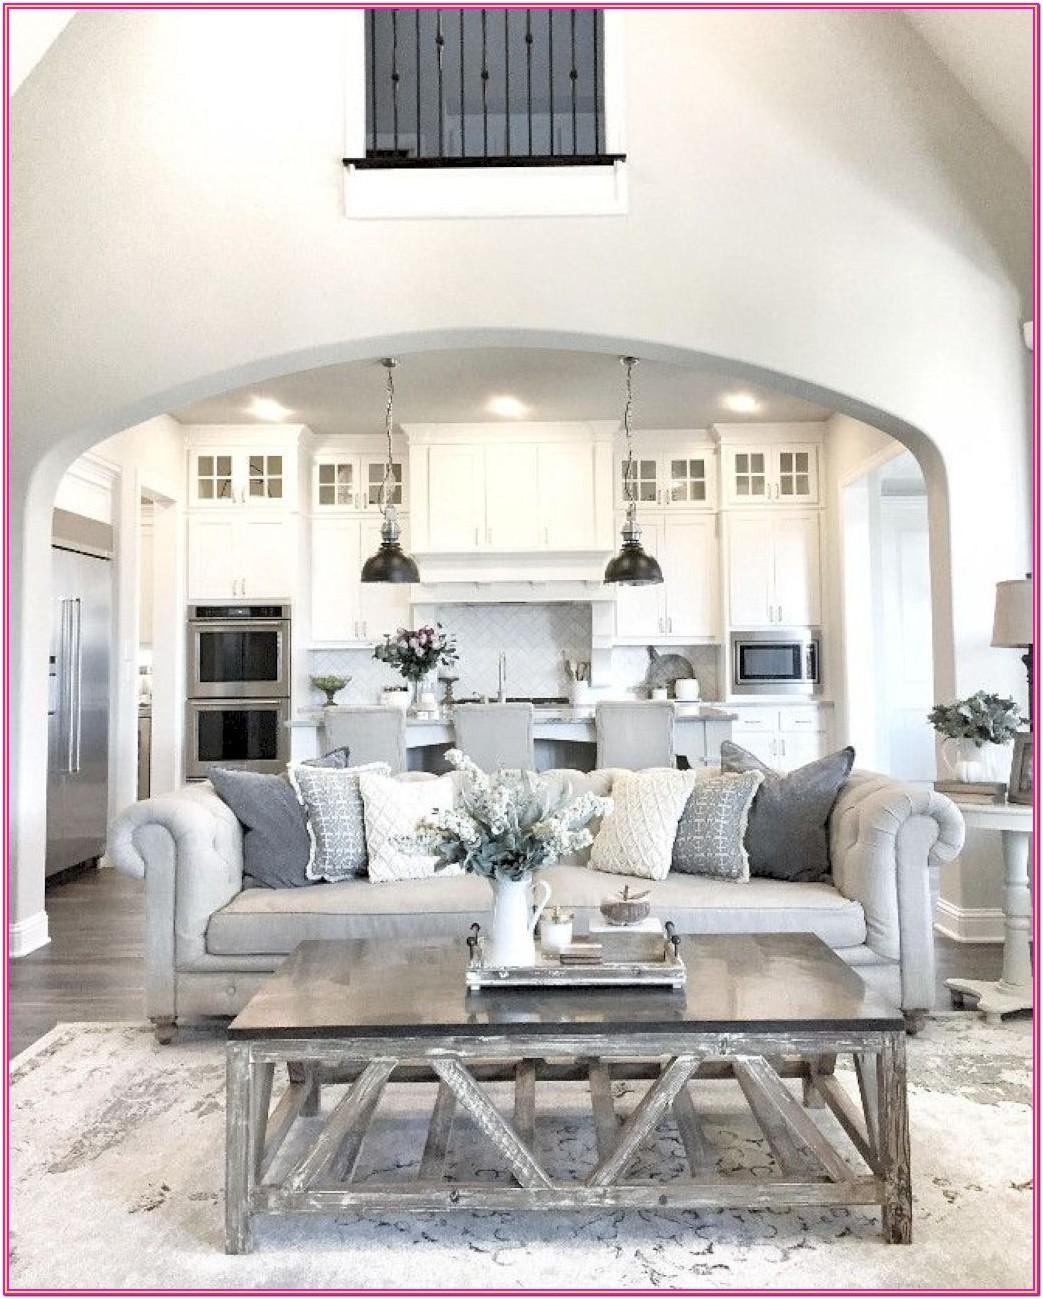 Farmhouse Inspired Gray Rustic Farmhouse Living Room